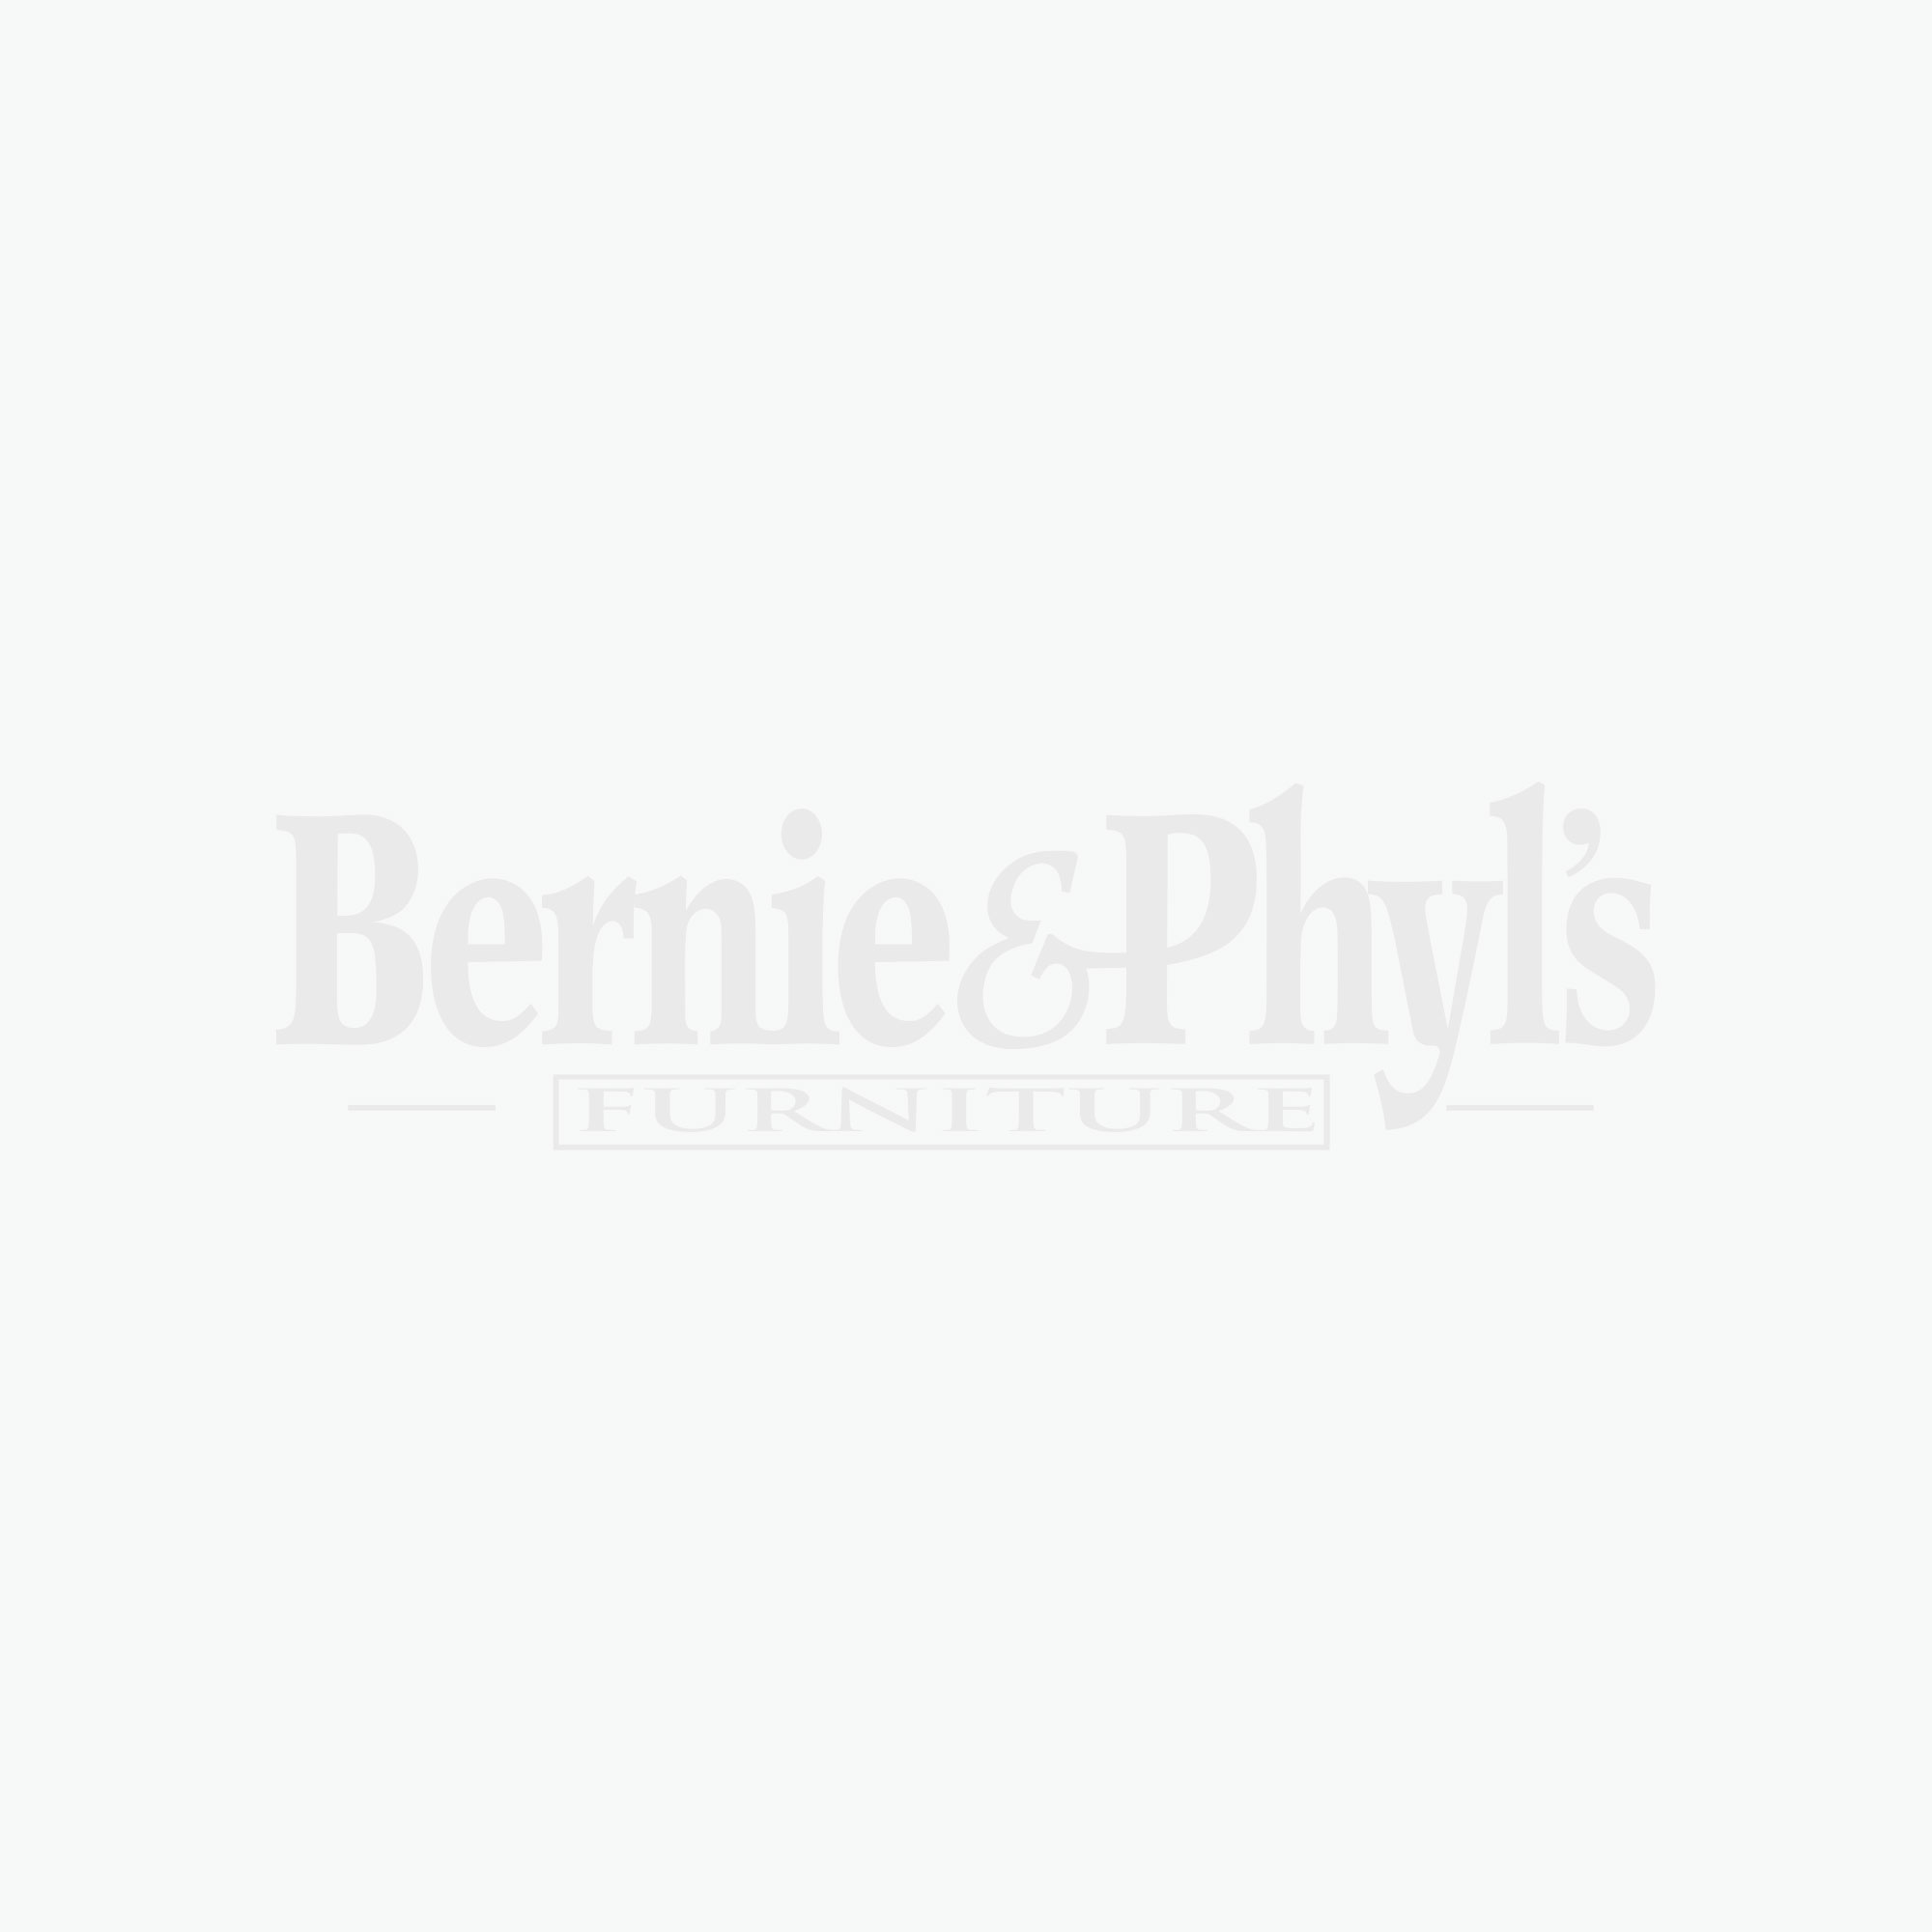 Jenny Sofa Bernie Phyl S Furniture